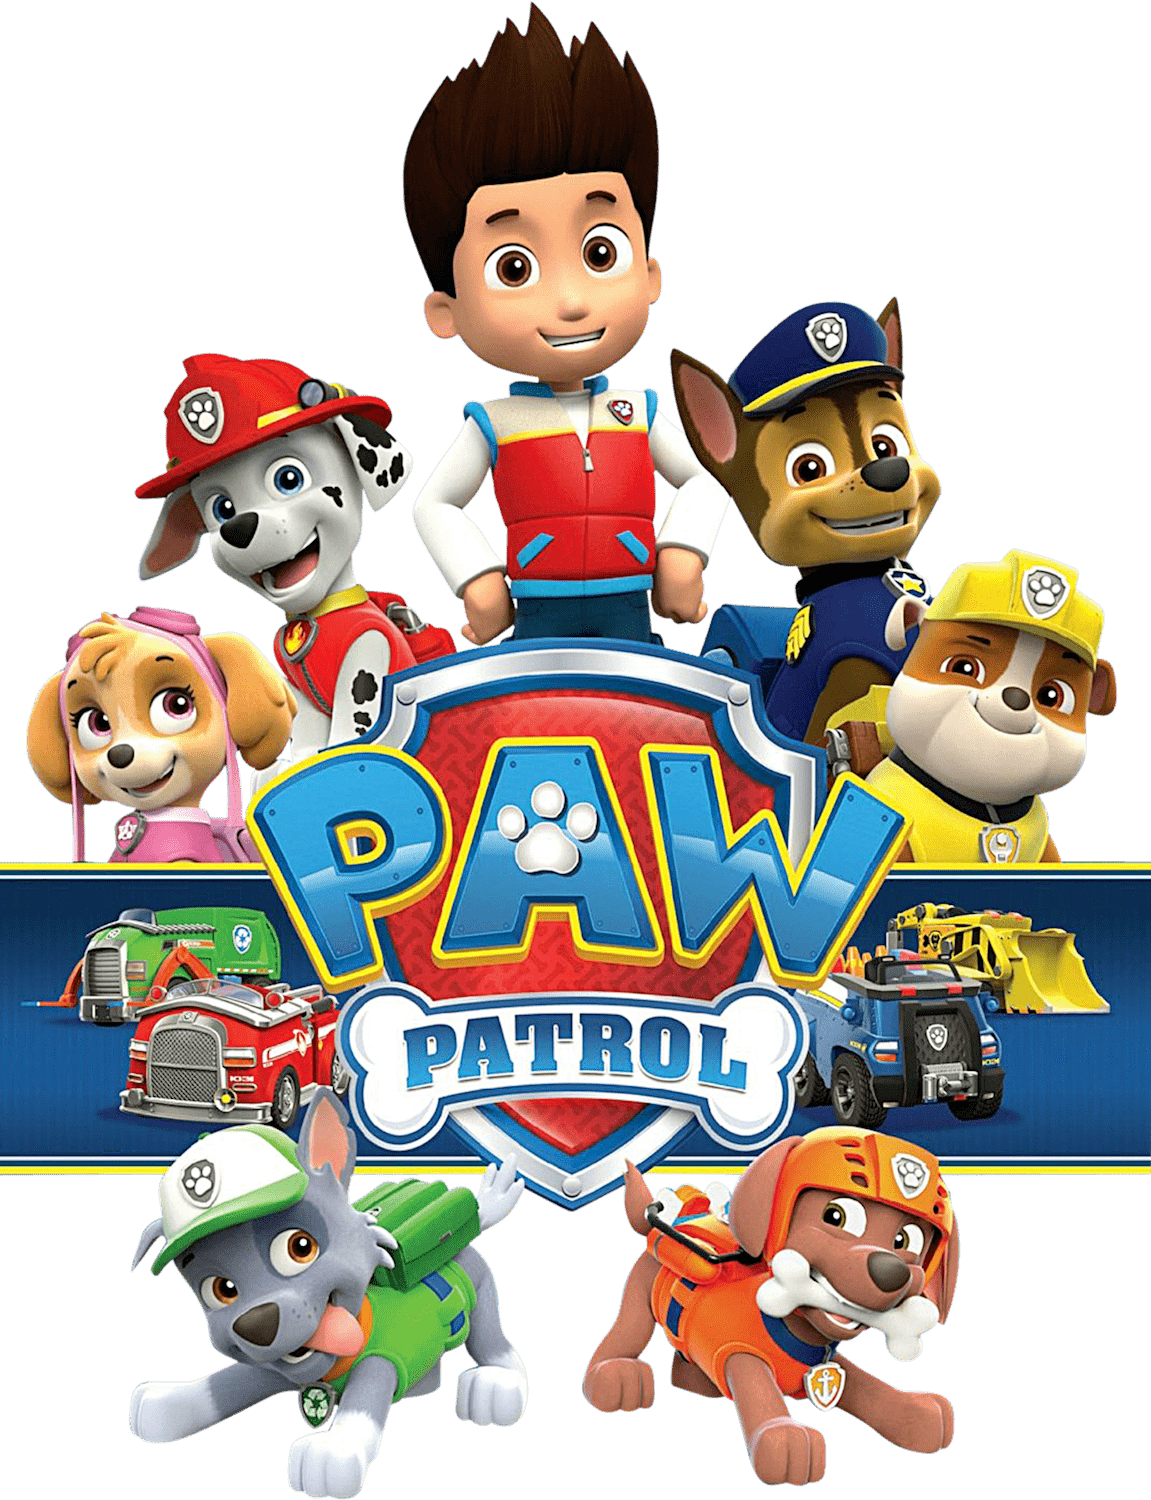 Transparent paw patrol. Pawpatrol with logo png